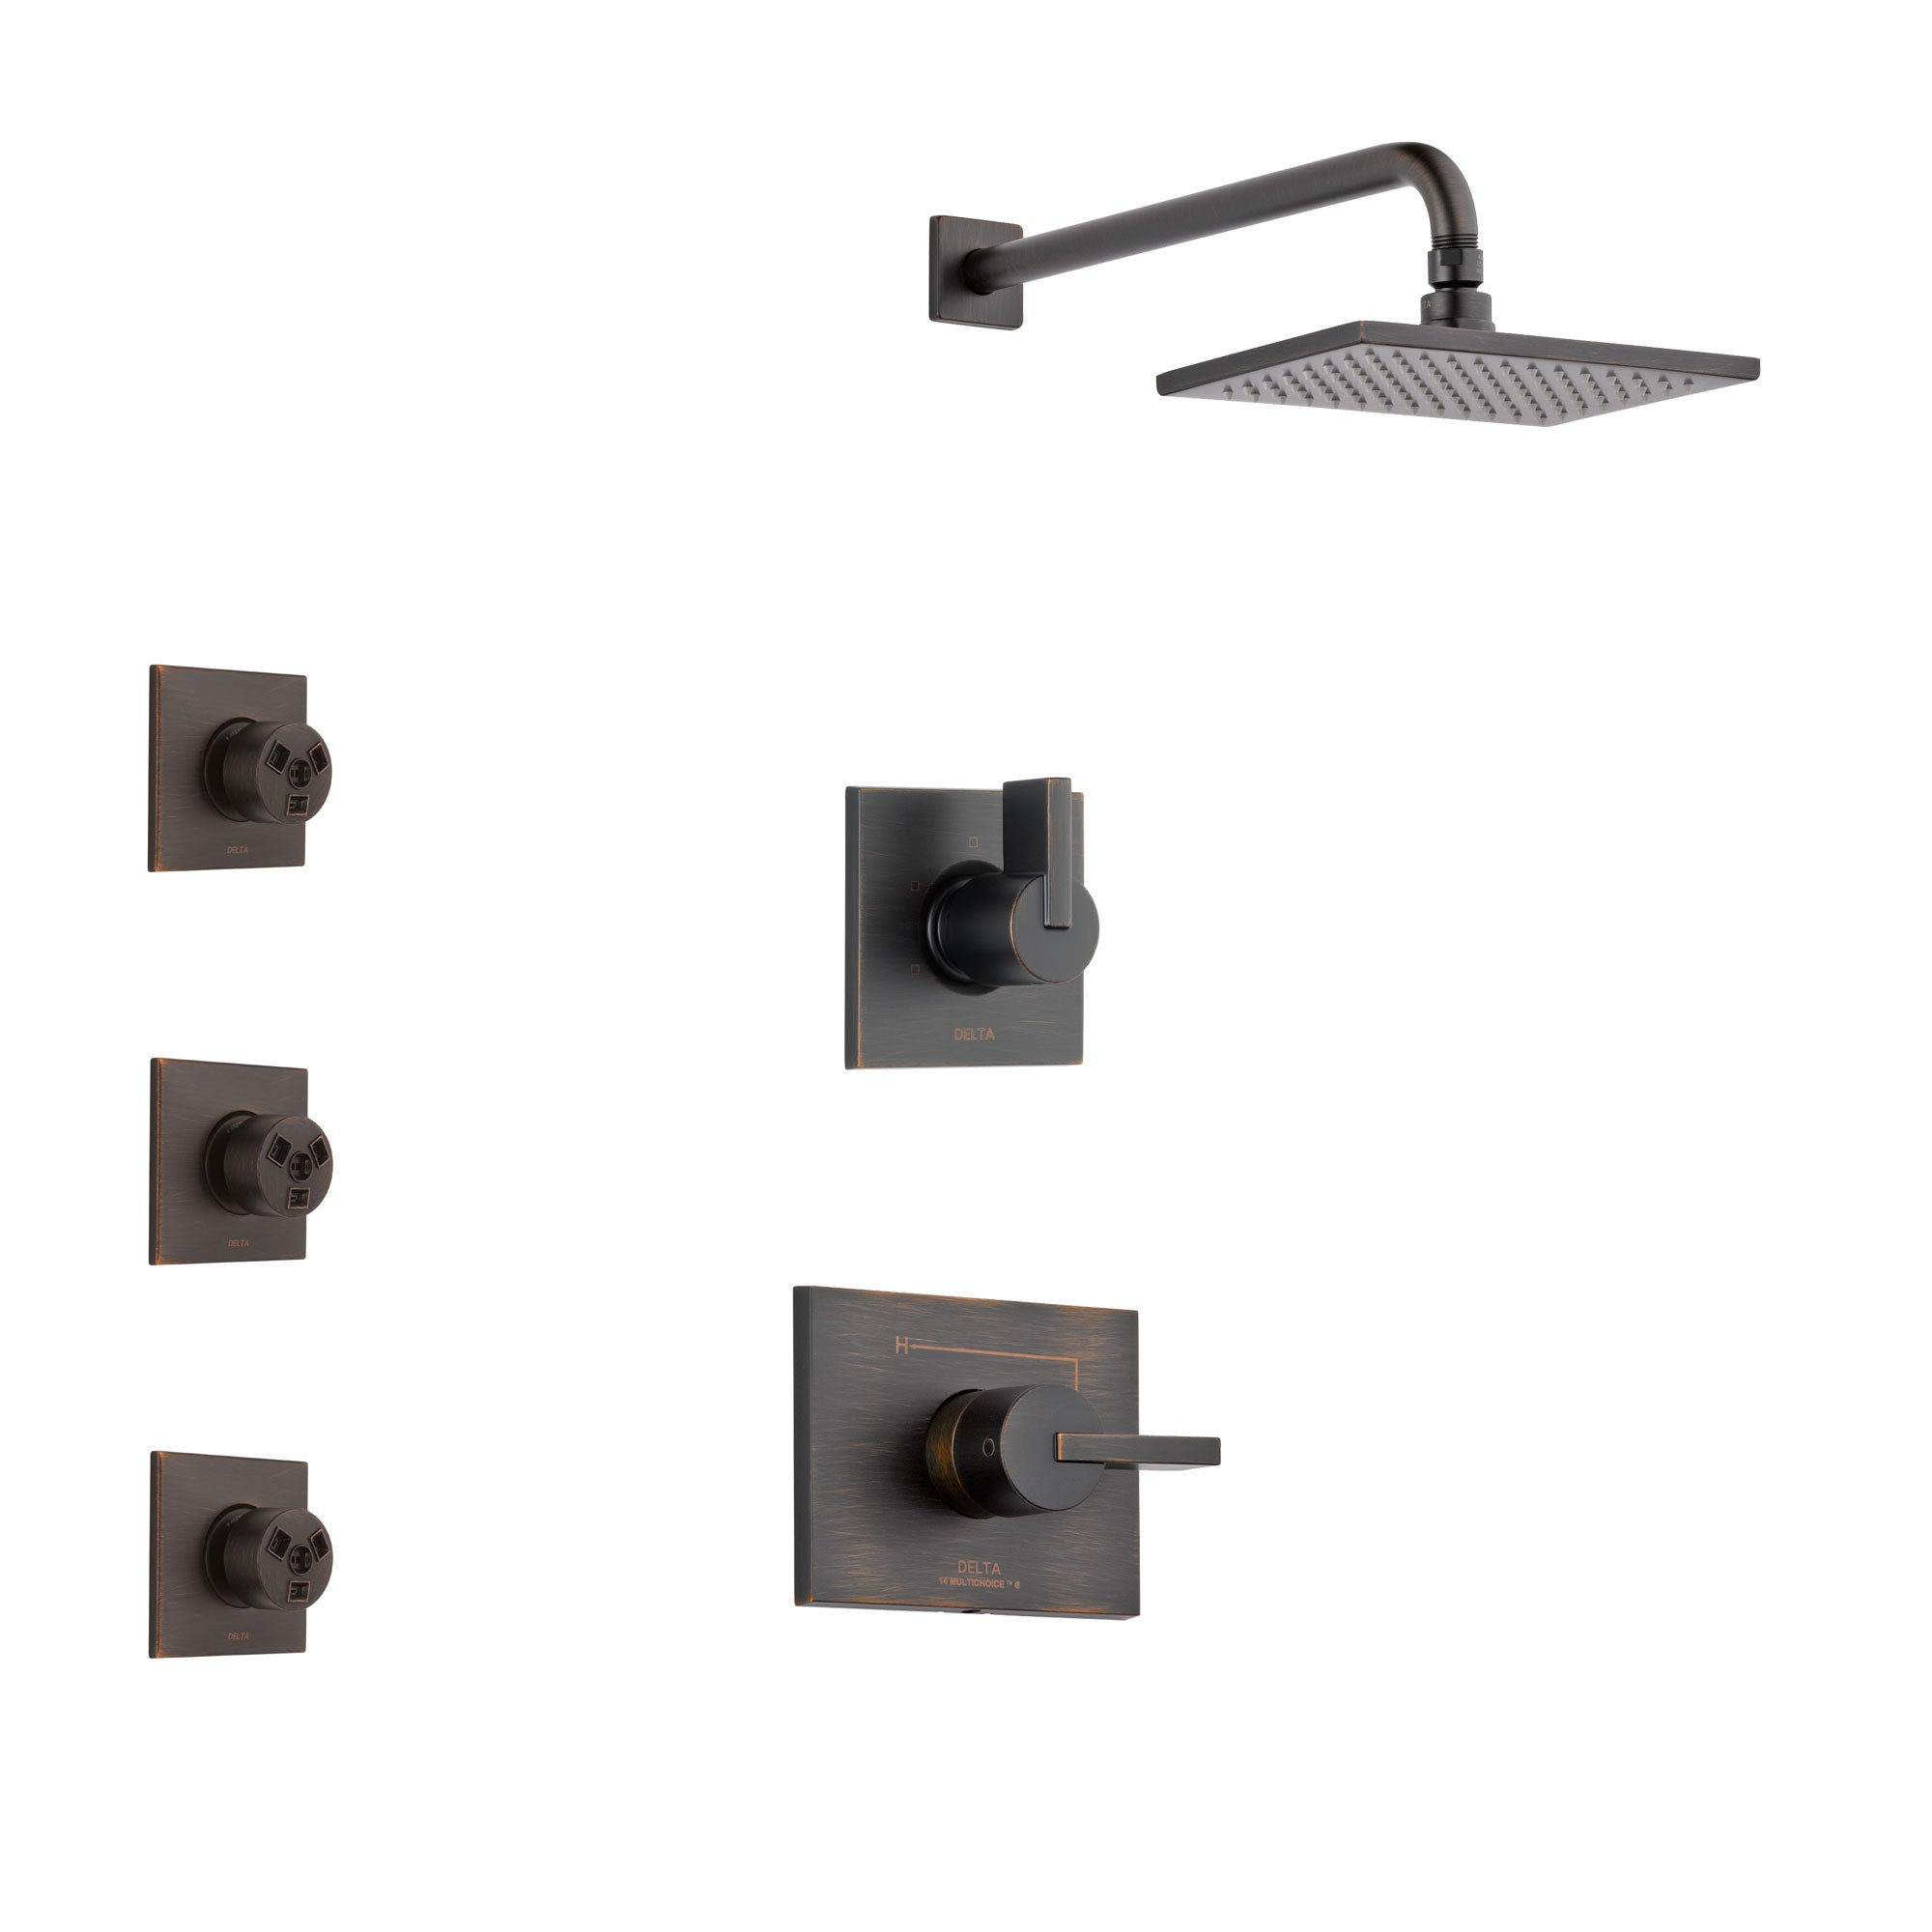 Delta Vero Venetian Bronze Finish Shower System with Control Handle, 3-Setting Diverter, Showerhead, and 3 Body Sprays SS142531RB2